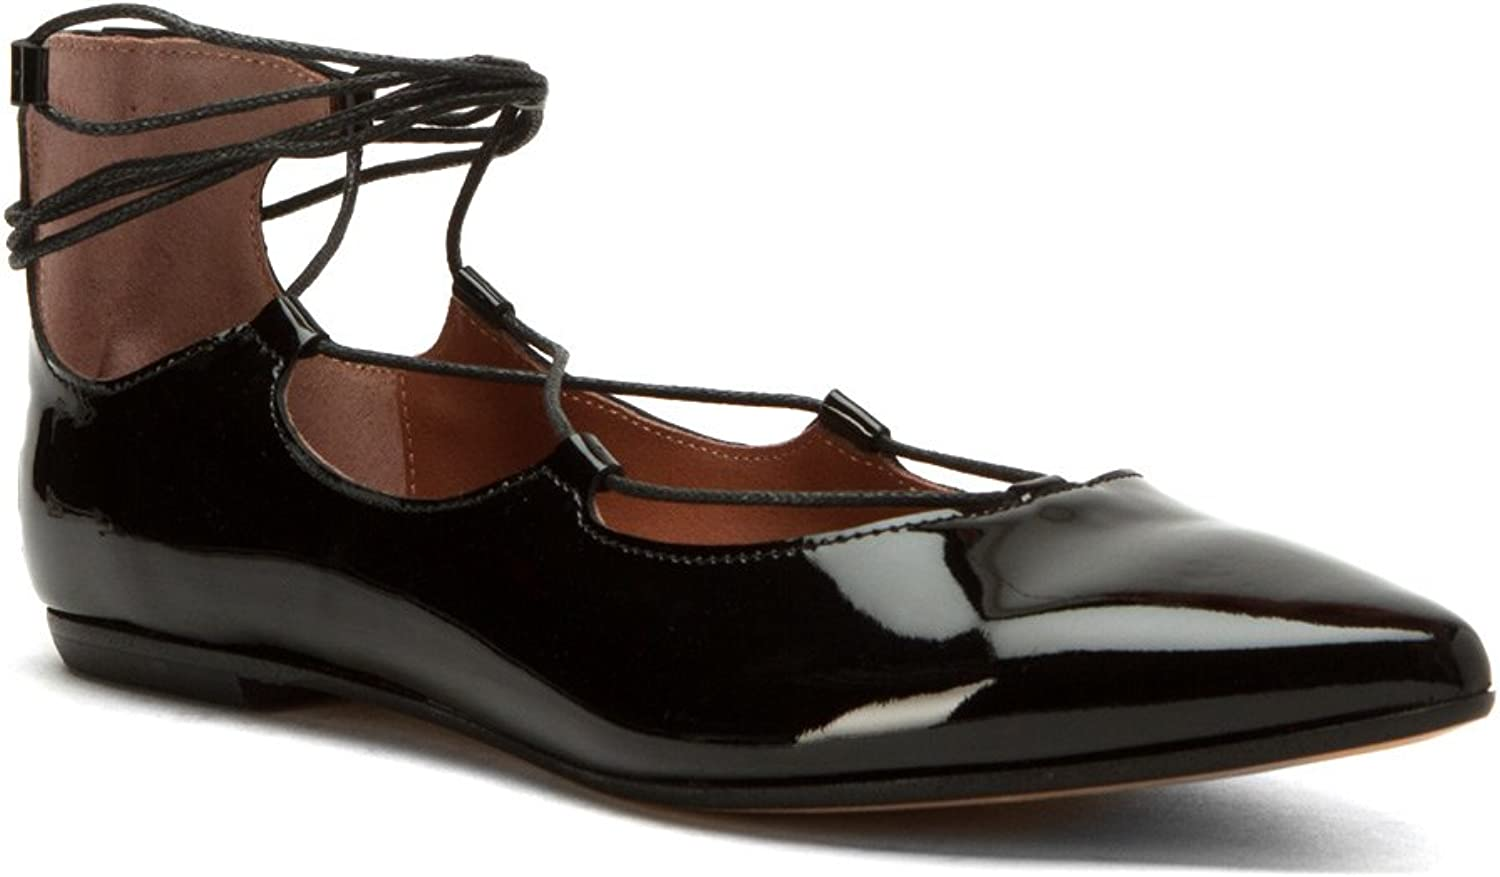 Summit by White Mountain Women's Karena Black Patent Leather Flat 37 M